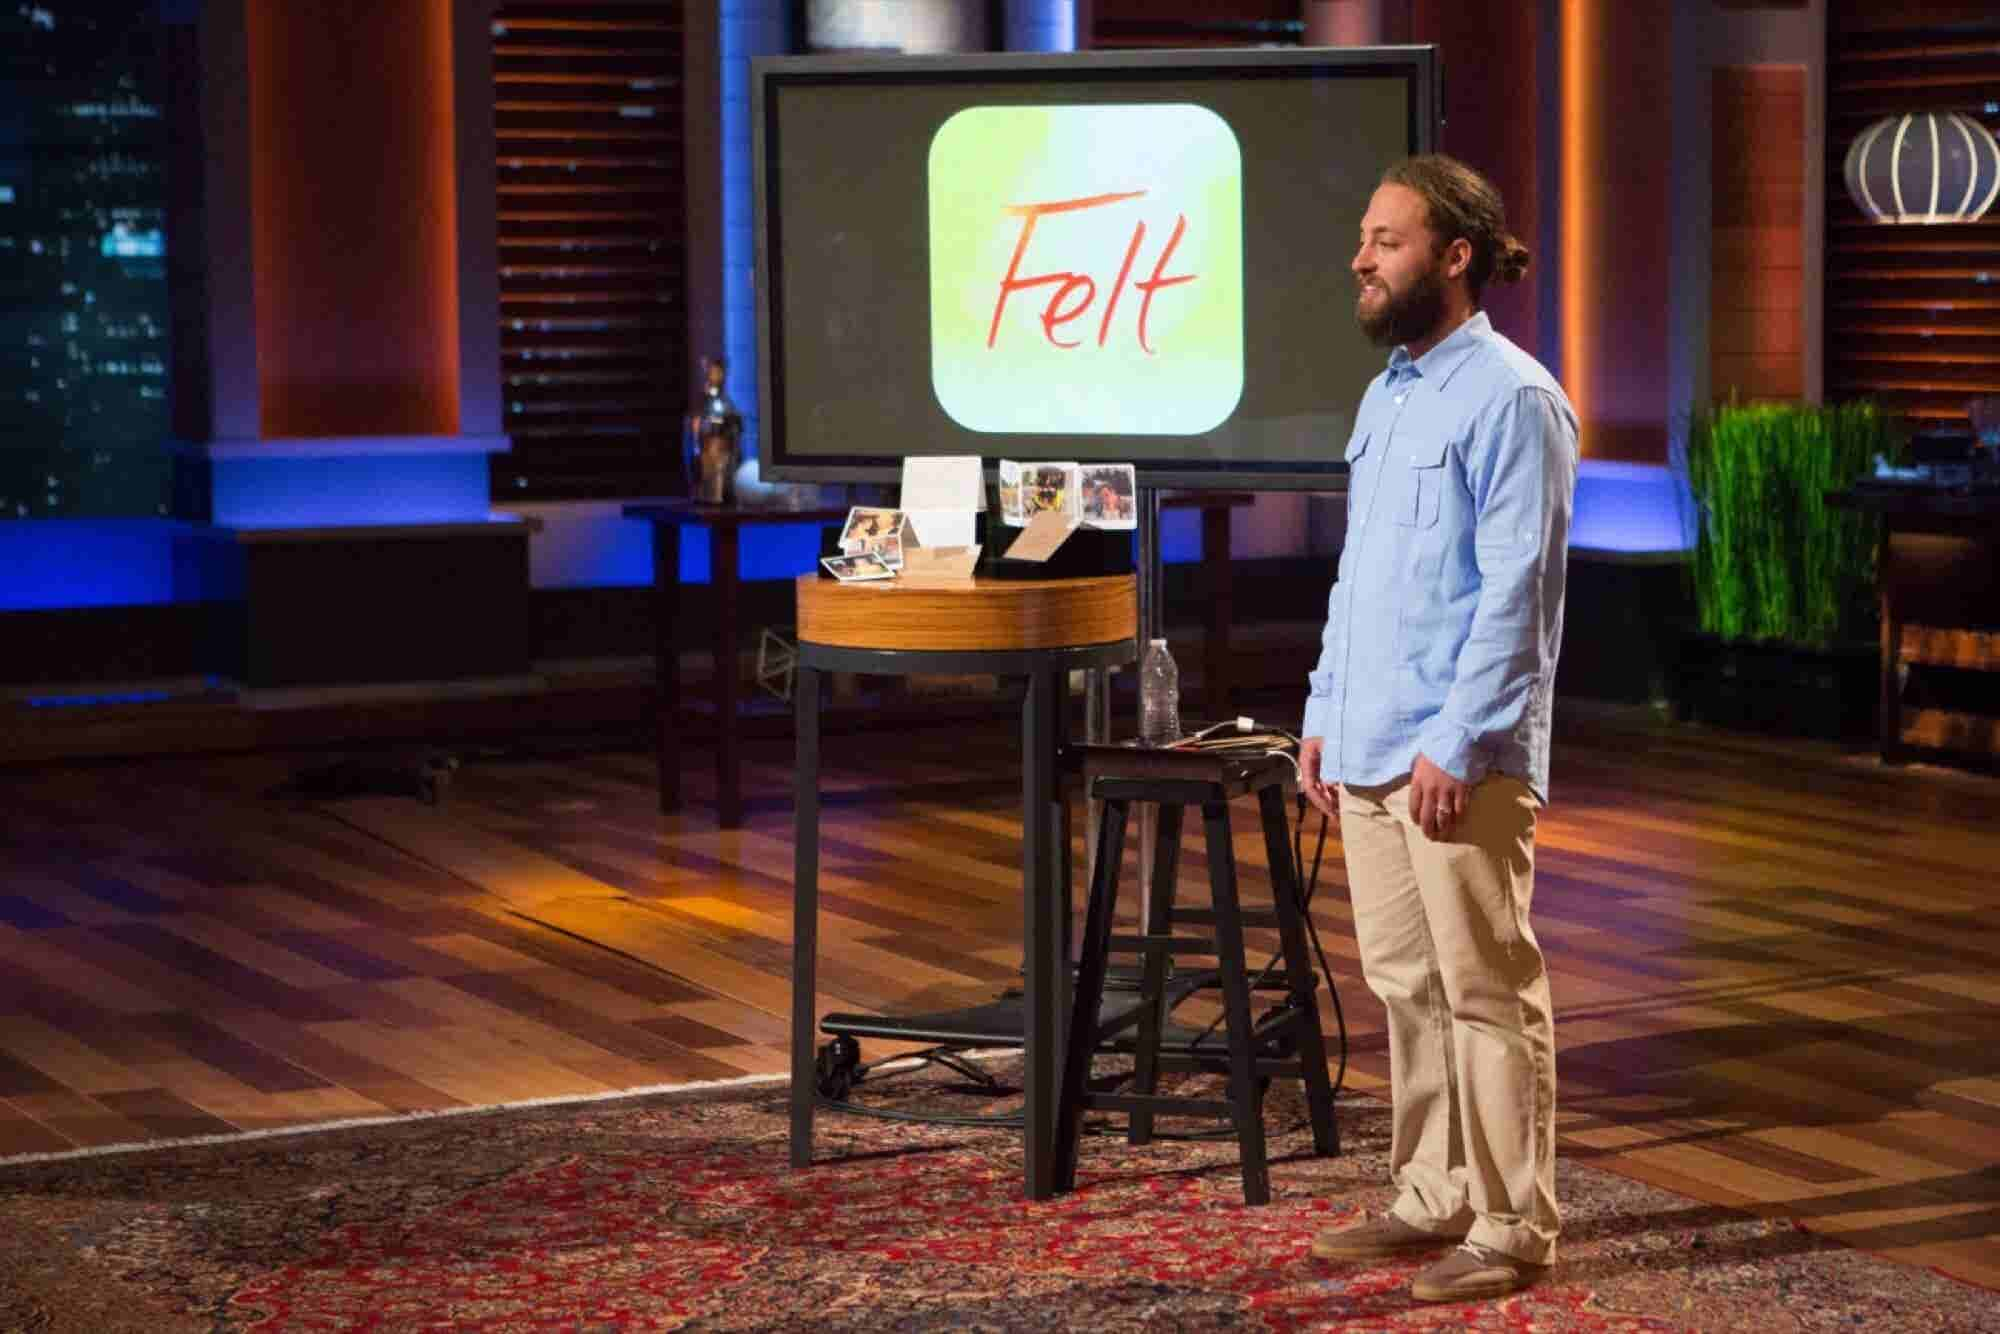 The Shark Tank Effect: This Entrepreneur 'Felt' the Power of the Show